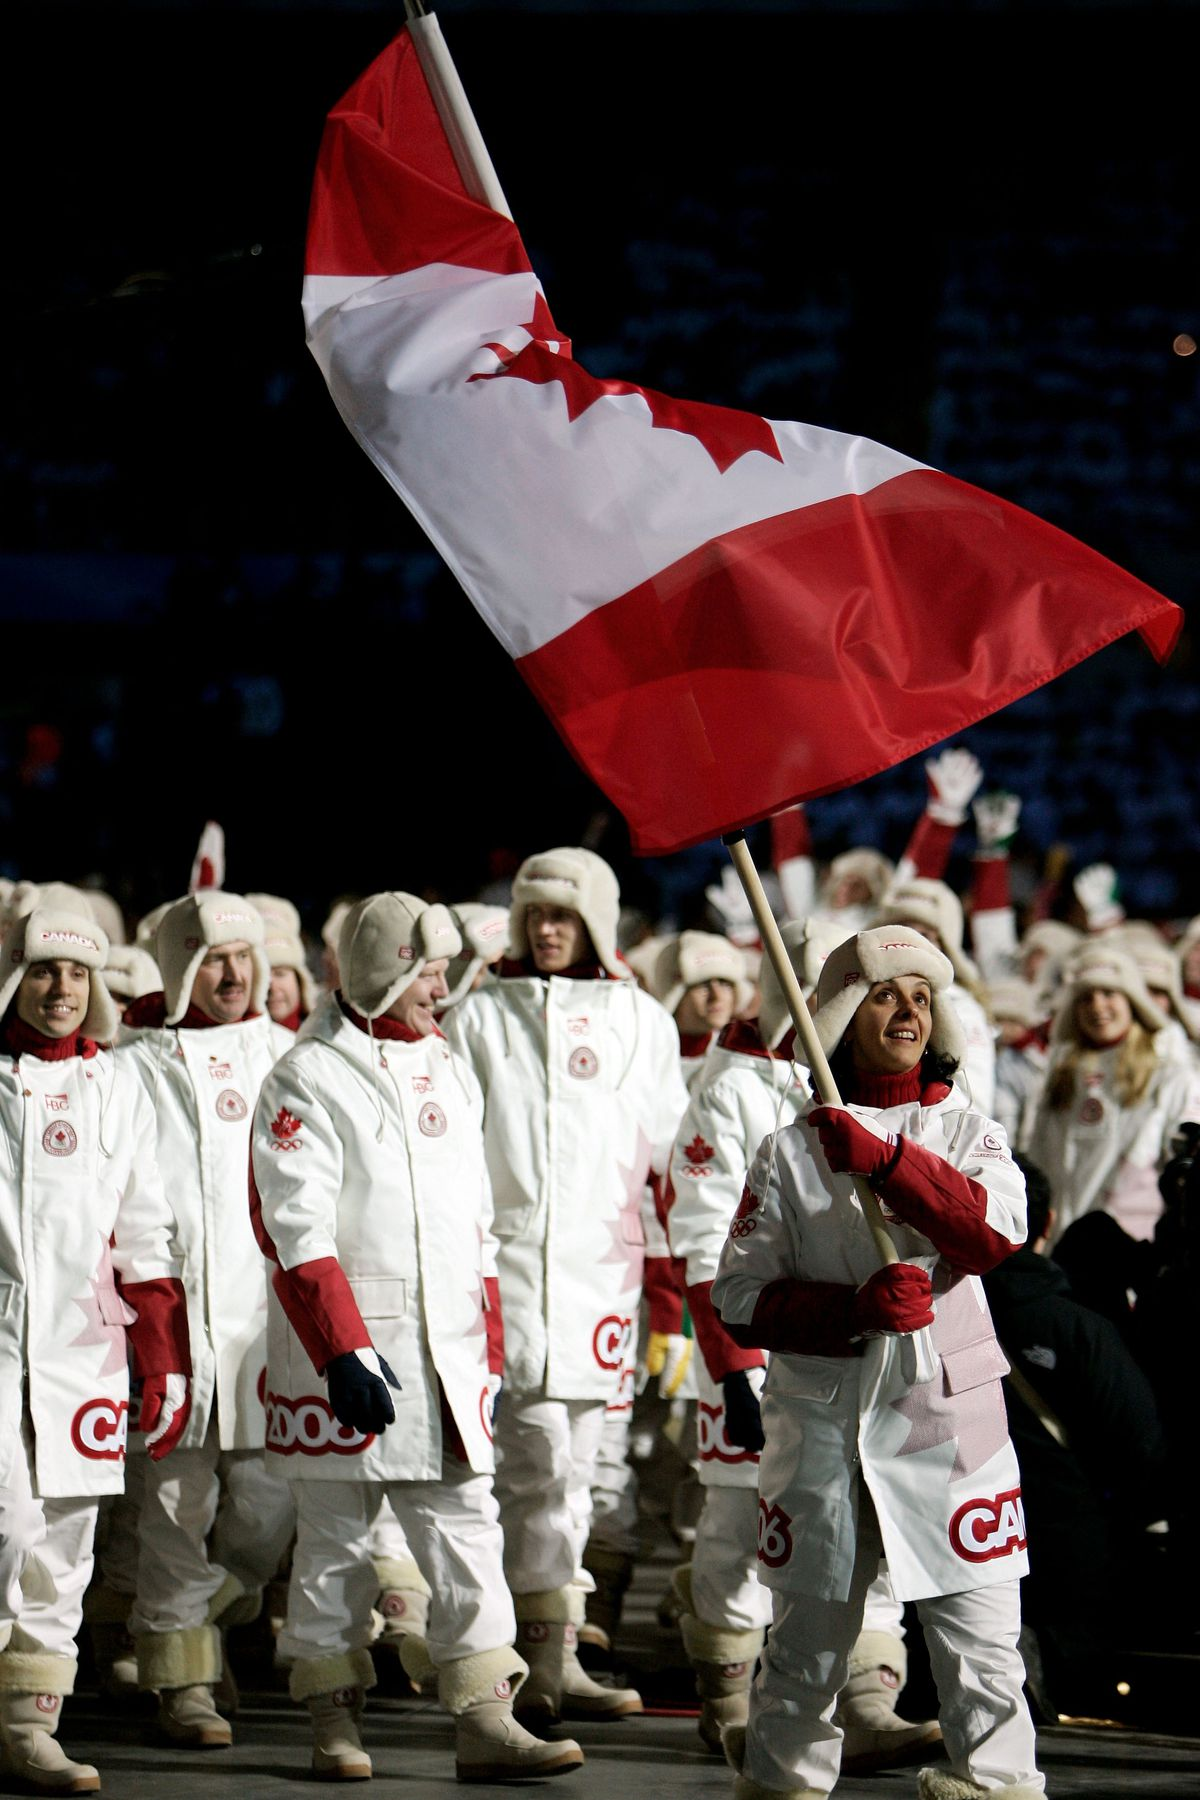 Danielle Goyette carries the Canadian flag during the Opening Ceremony of the Turin 2006 Winter Olympic Games